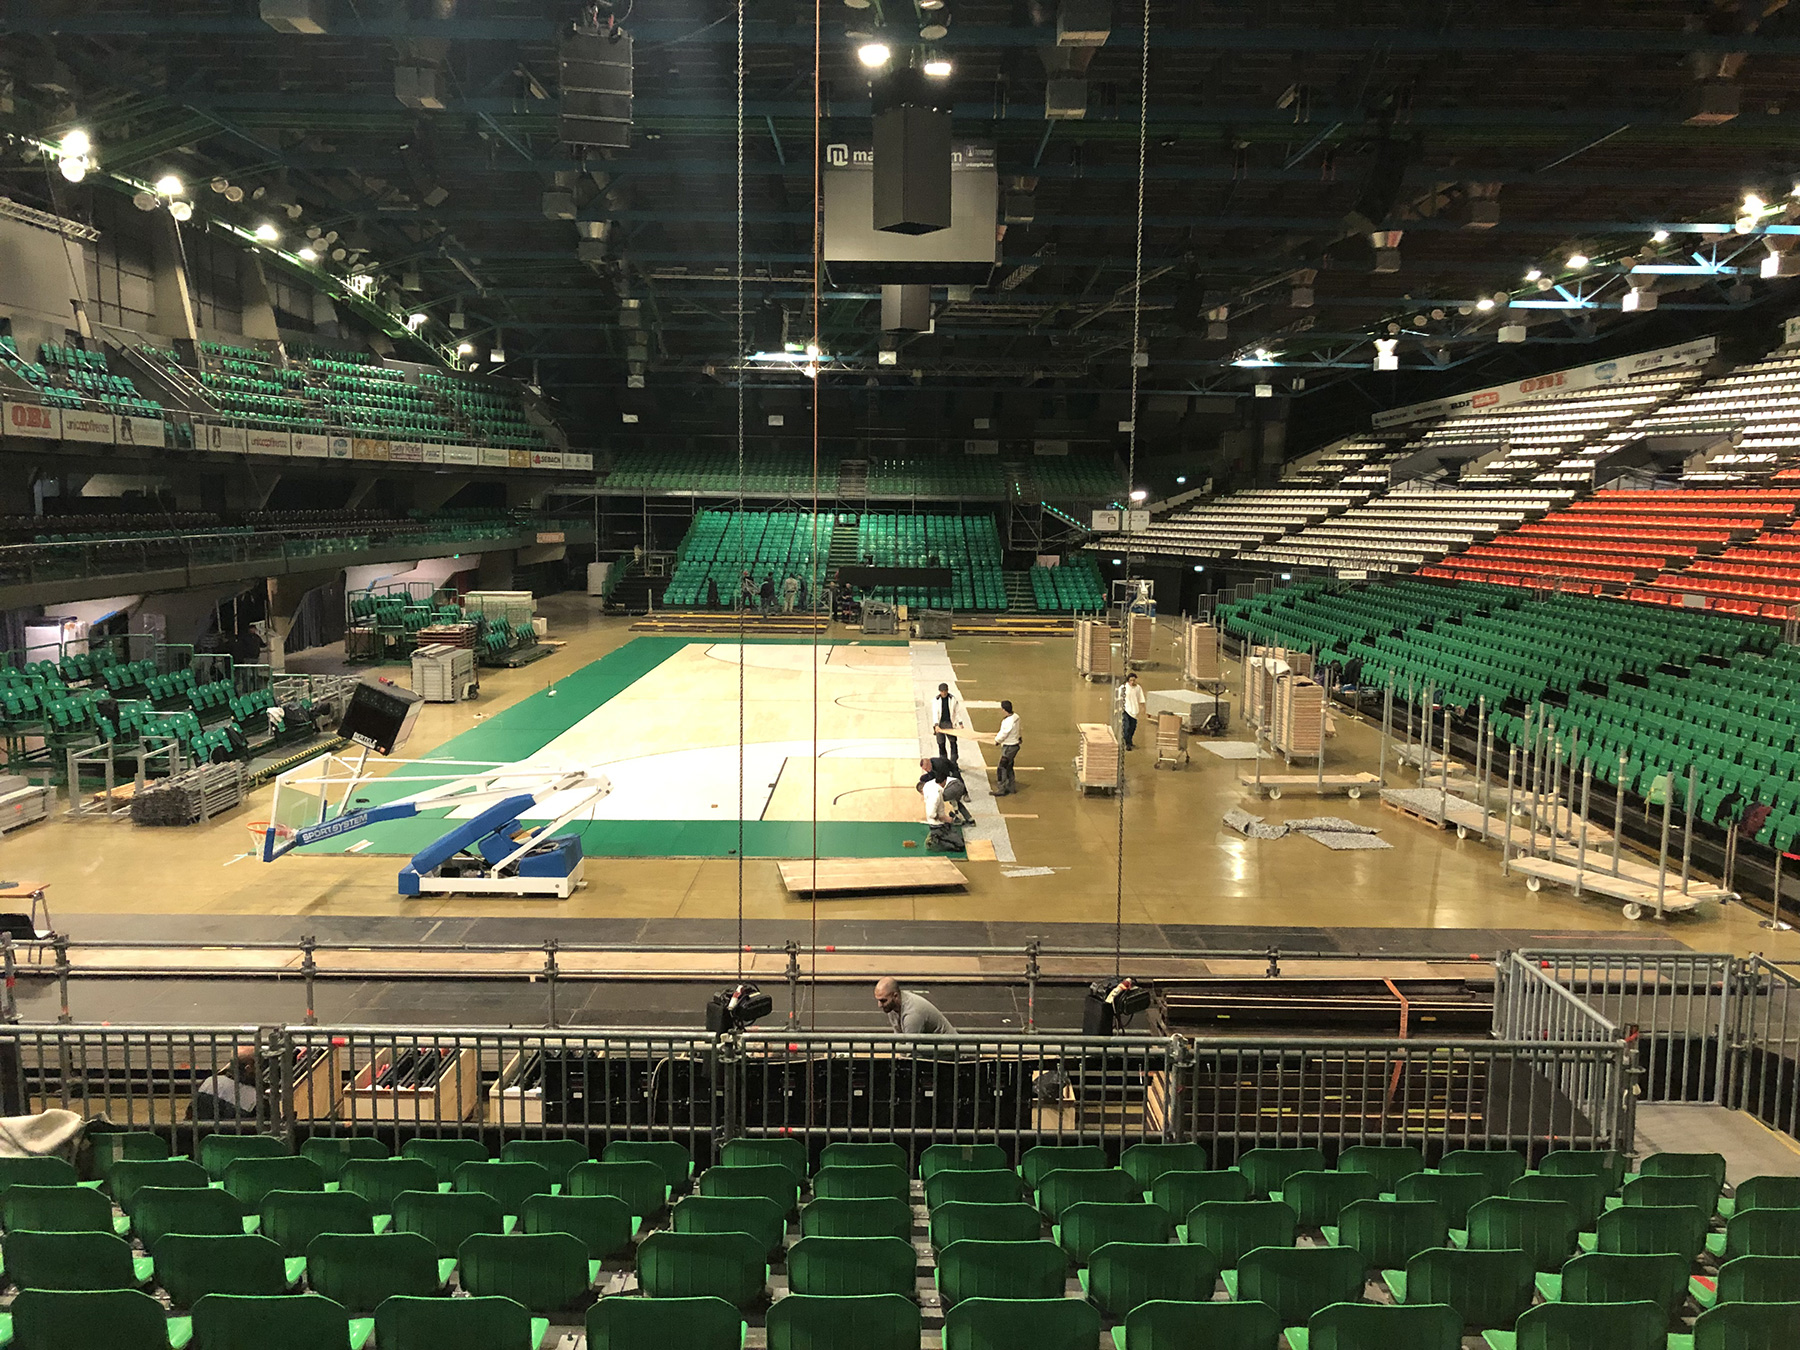 Preparations at the Mandela Forum, Dalla Riva Sportfloors protagonist with its new removable parquet